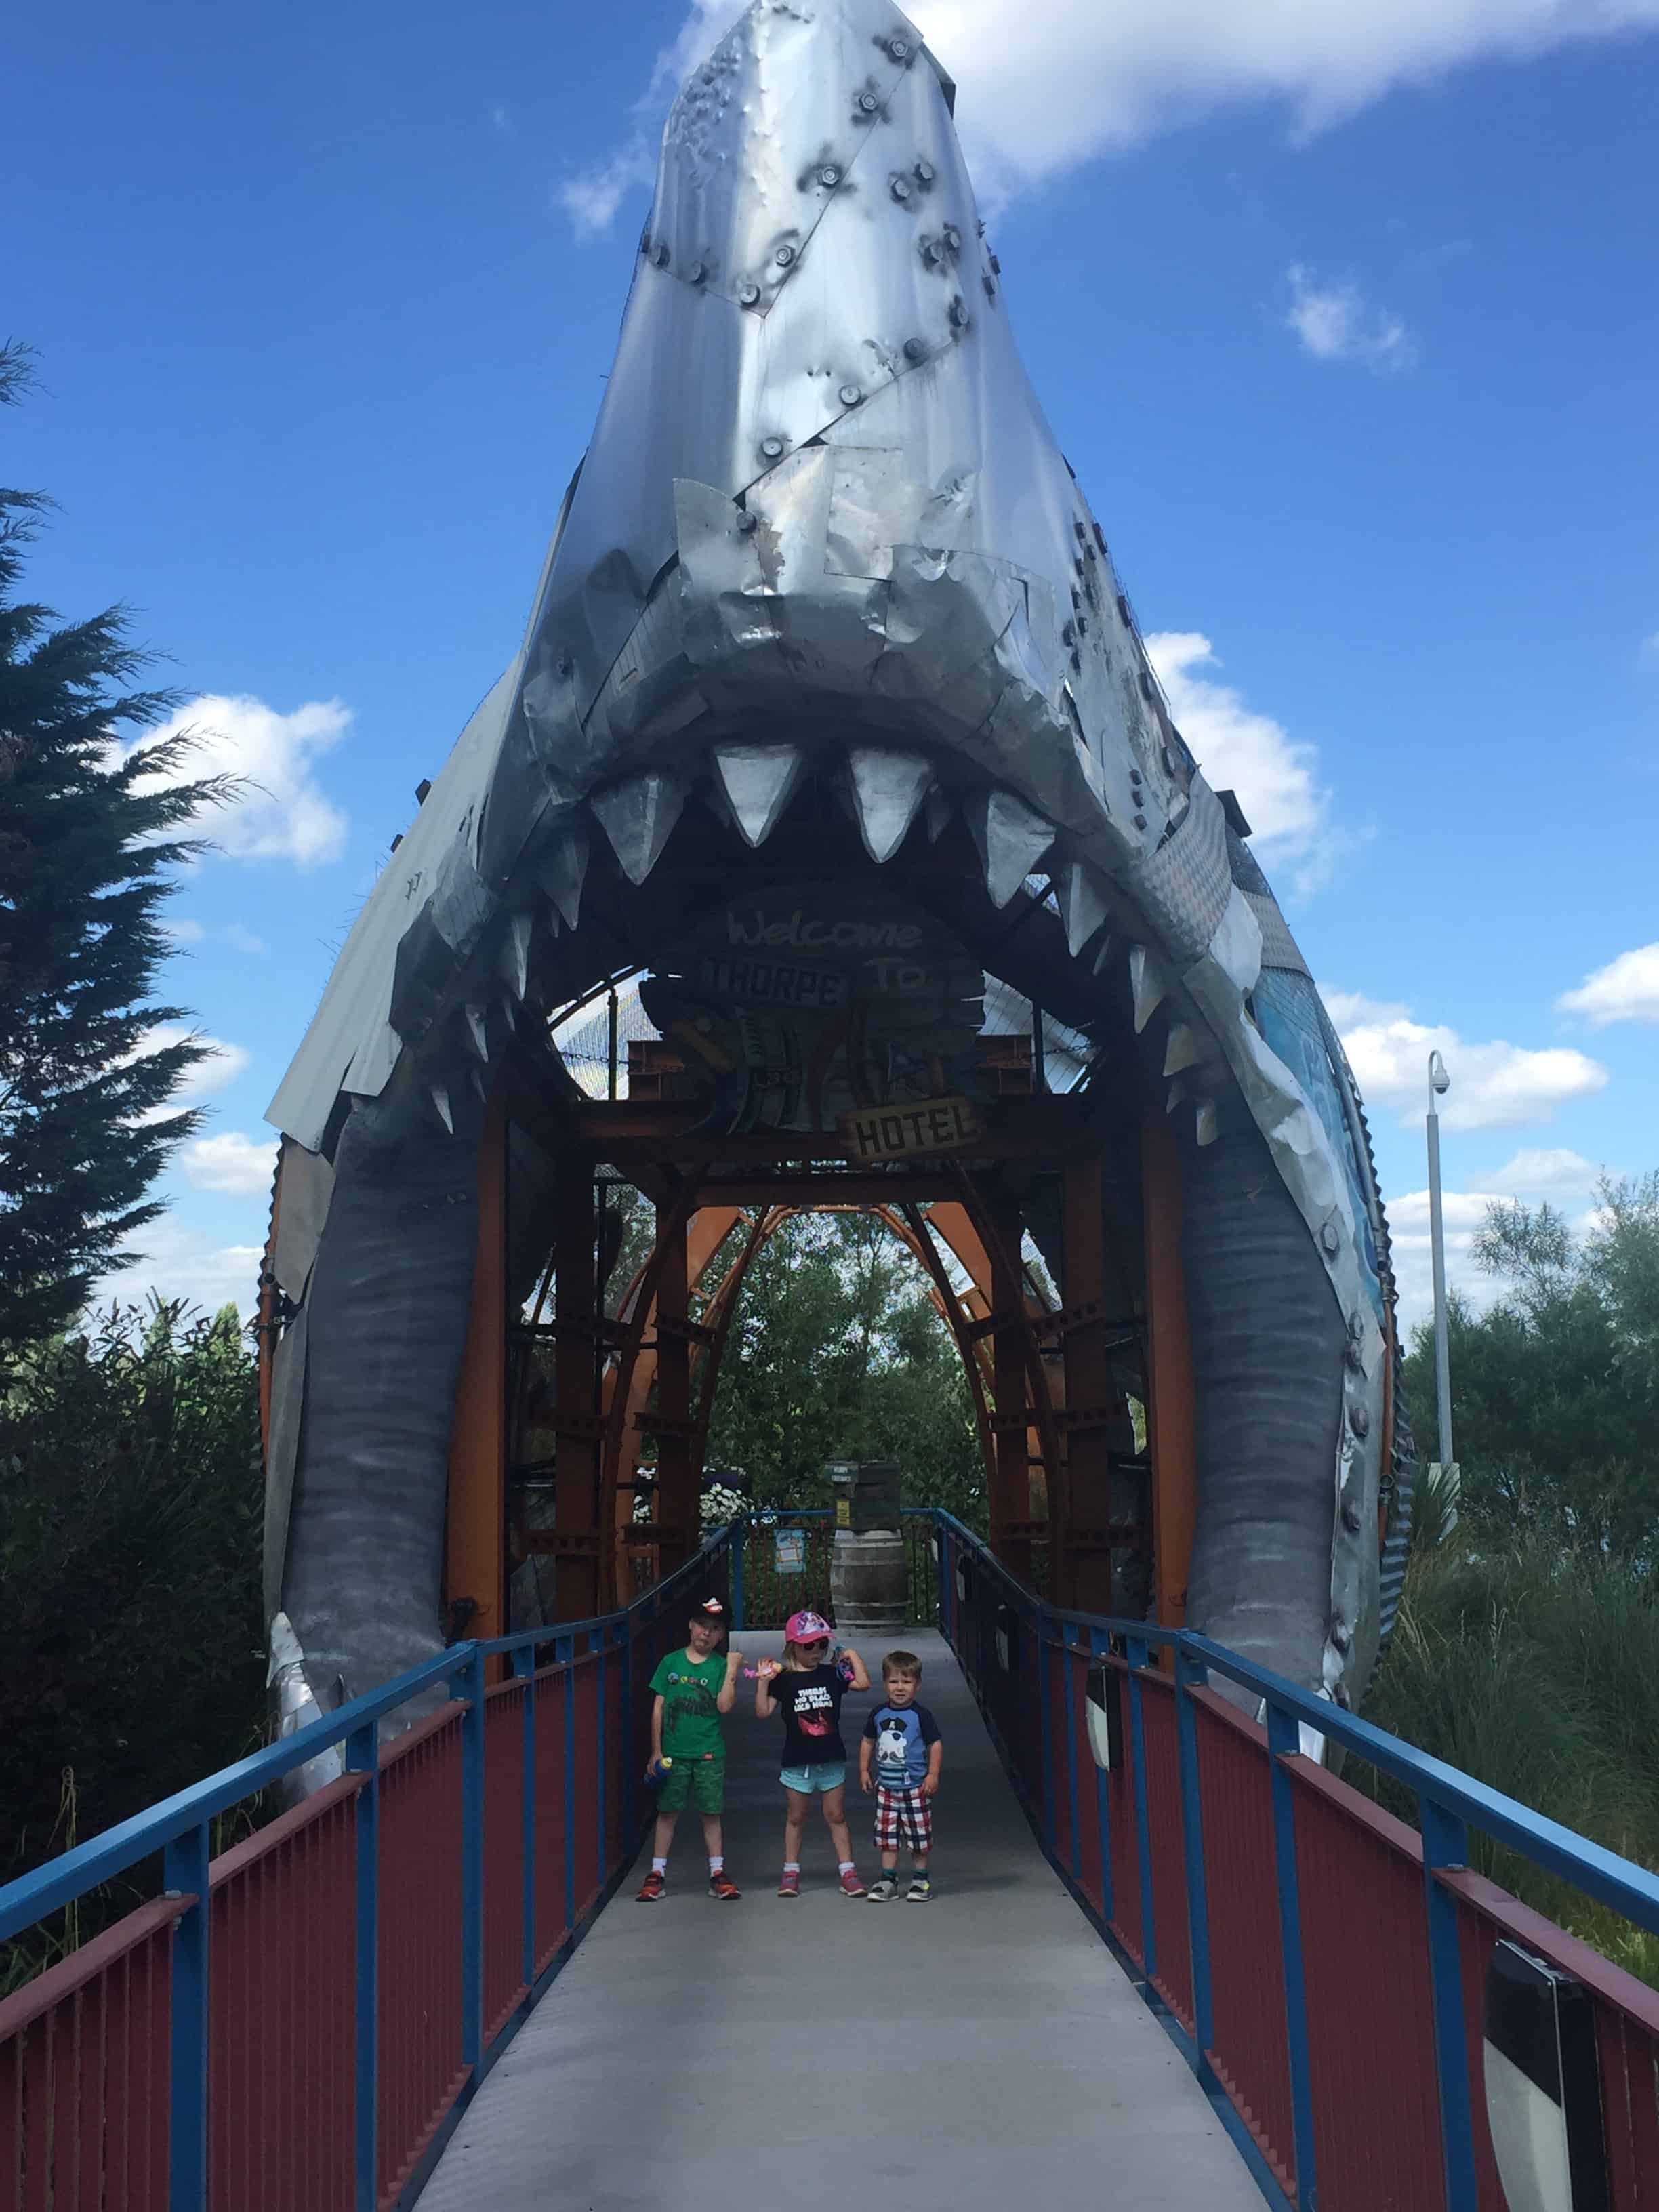 The Shark Hotel at Thorpe Park Review